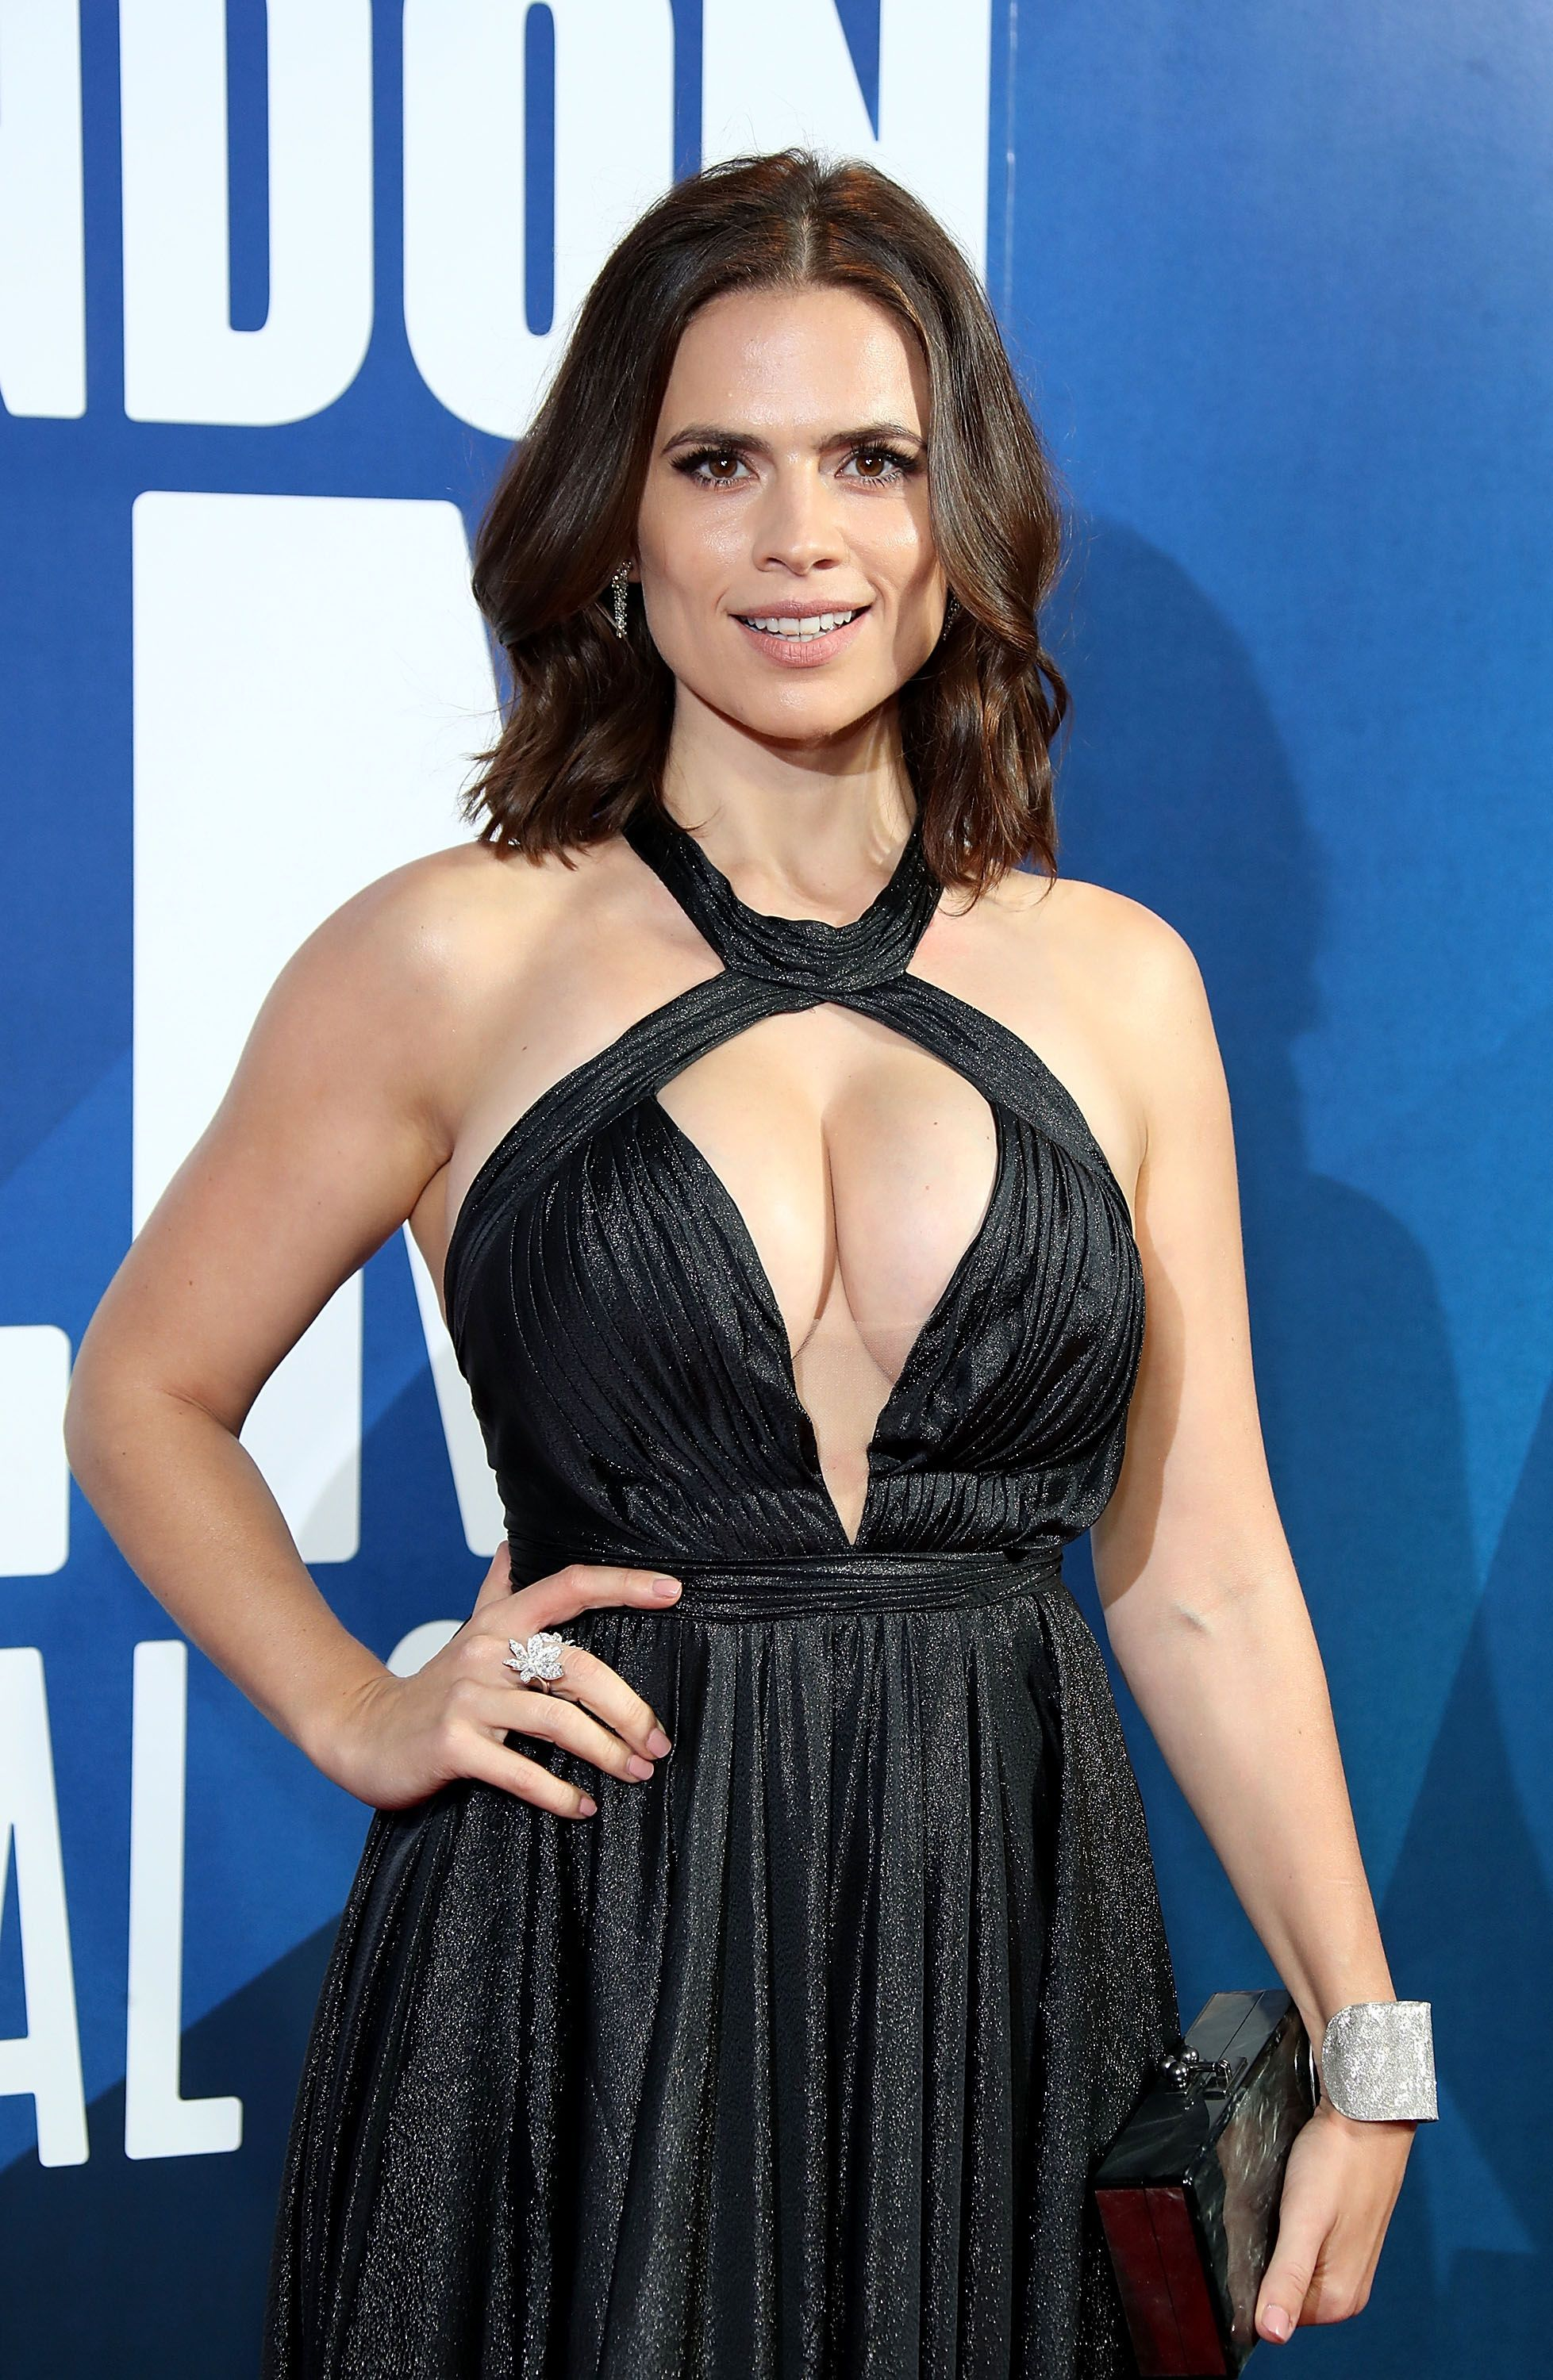 Paparazzi Hayley Atwell naked (67 photo), Topless, Hot, Selfie, lingerie 2015